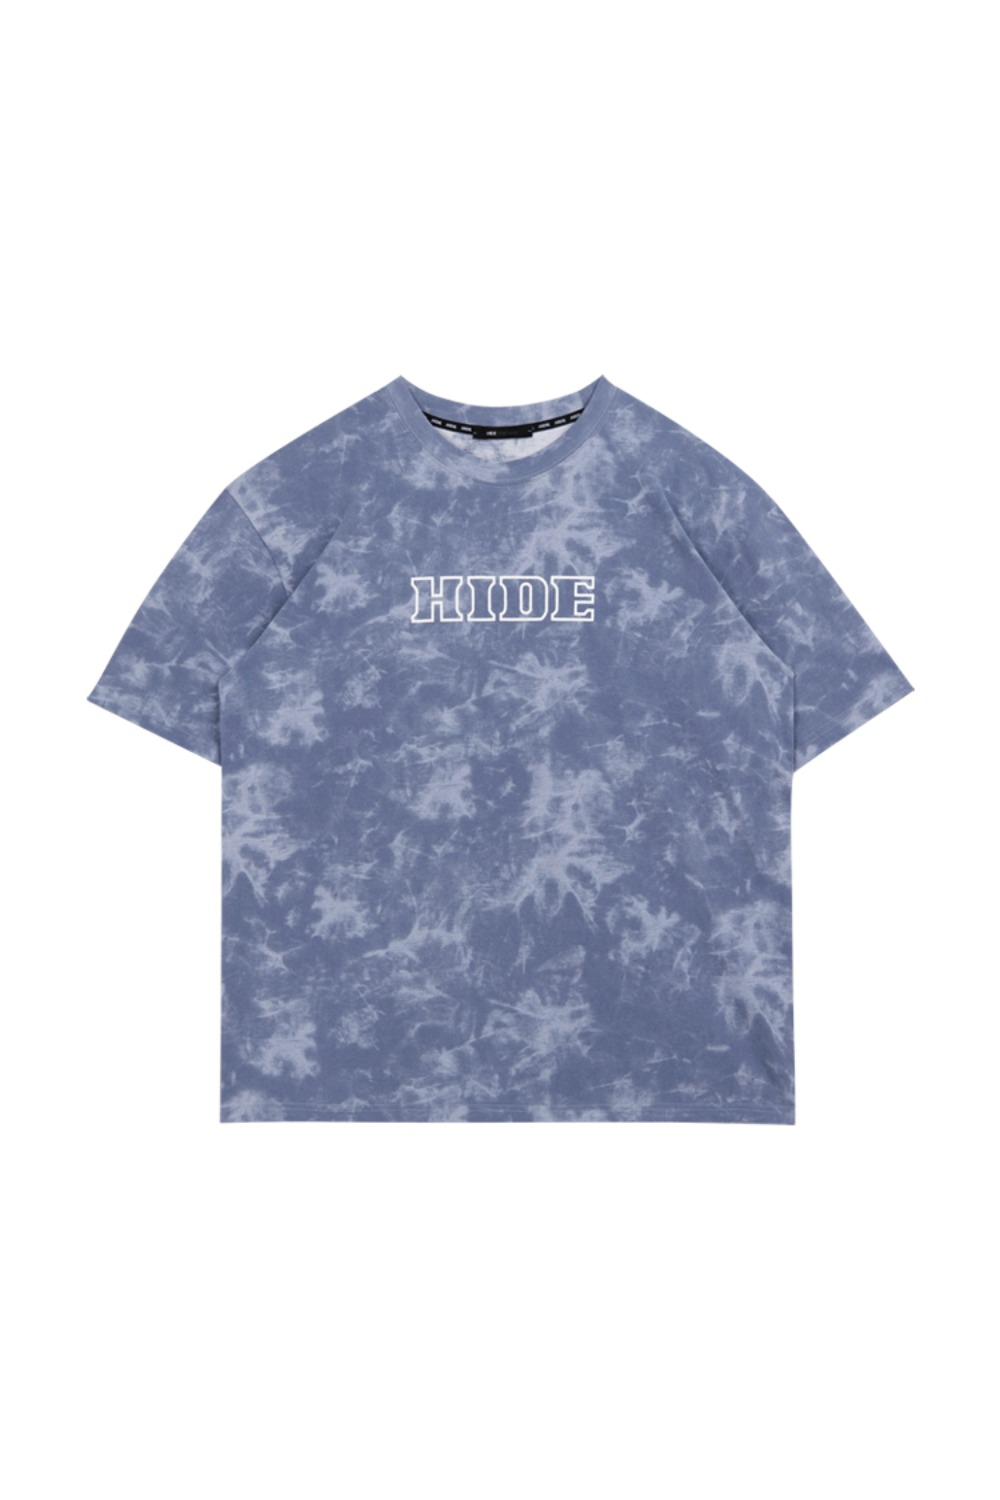 HIDE Tie Dye T-Shirt VINTAGE BLUE